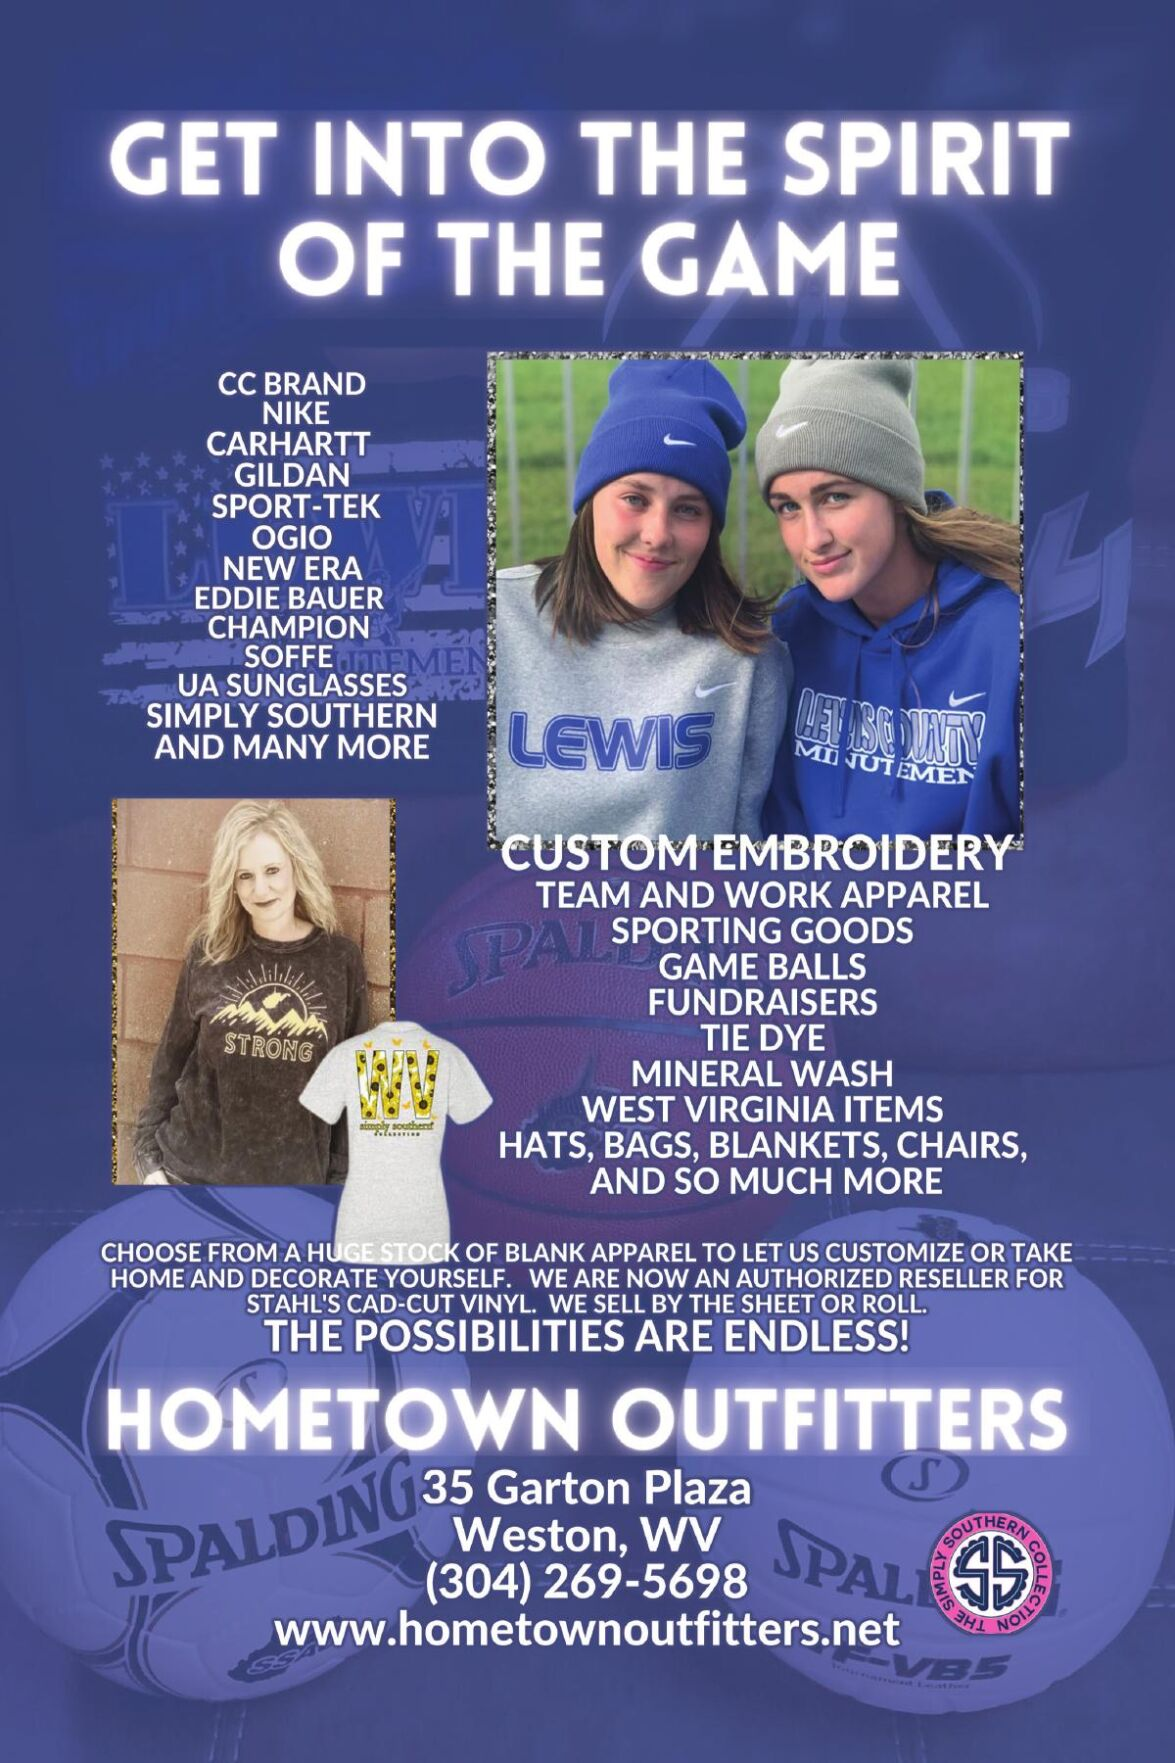 HOMETOWN OUTFITTERS (WD)